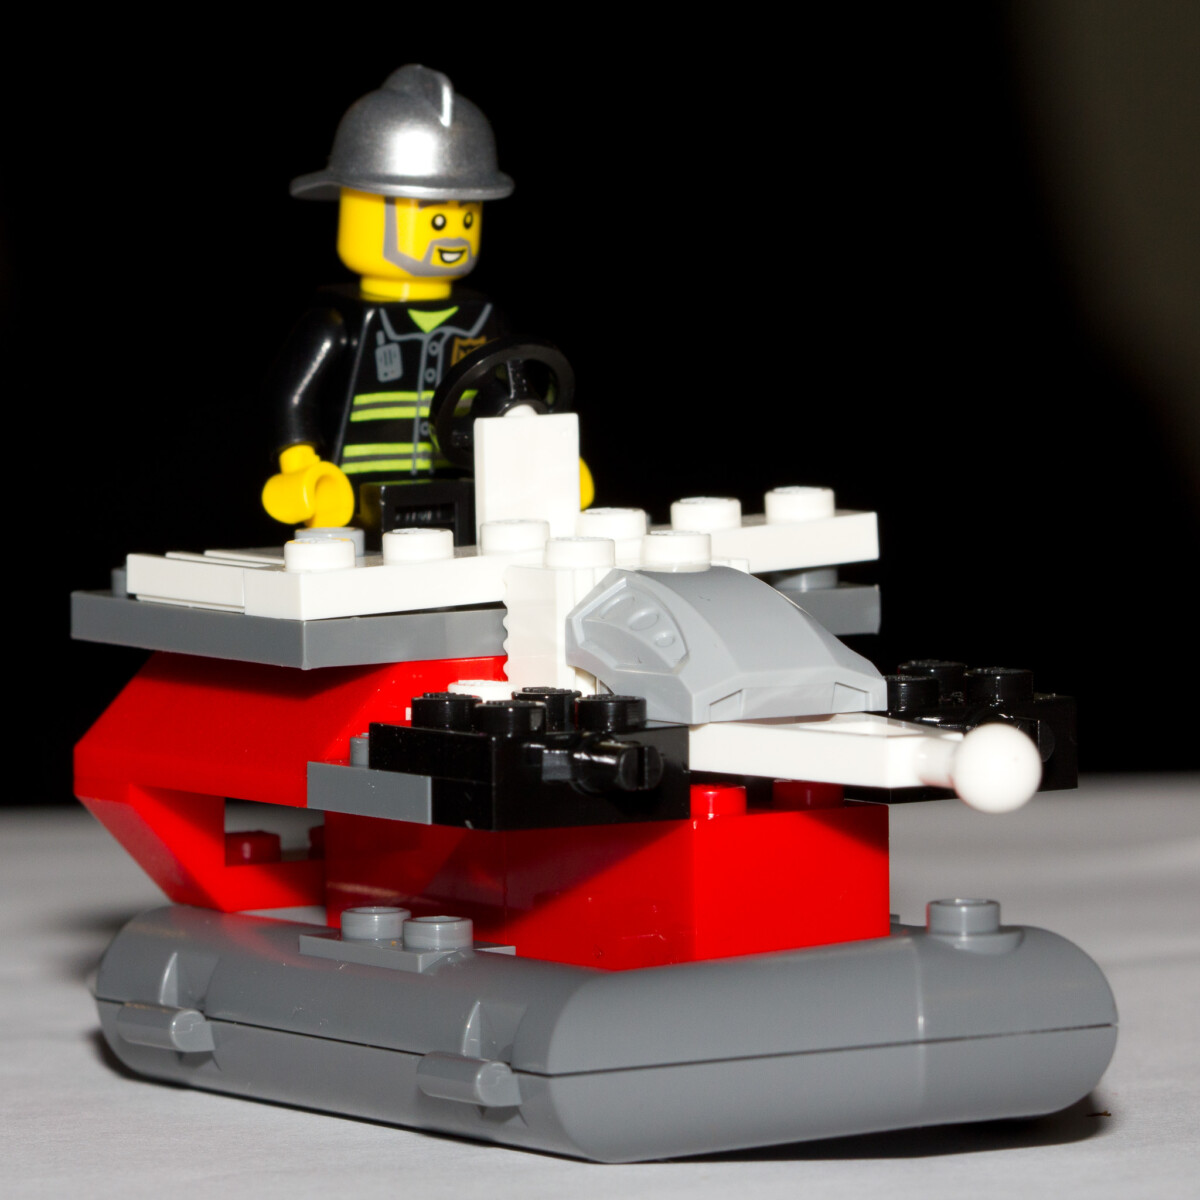 Lego Fire Boat